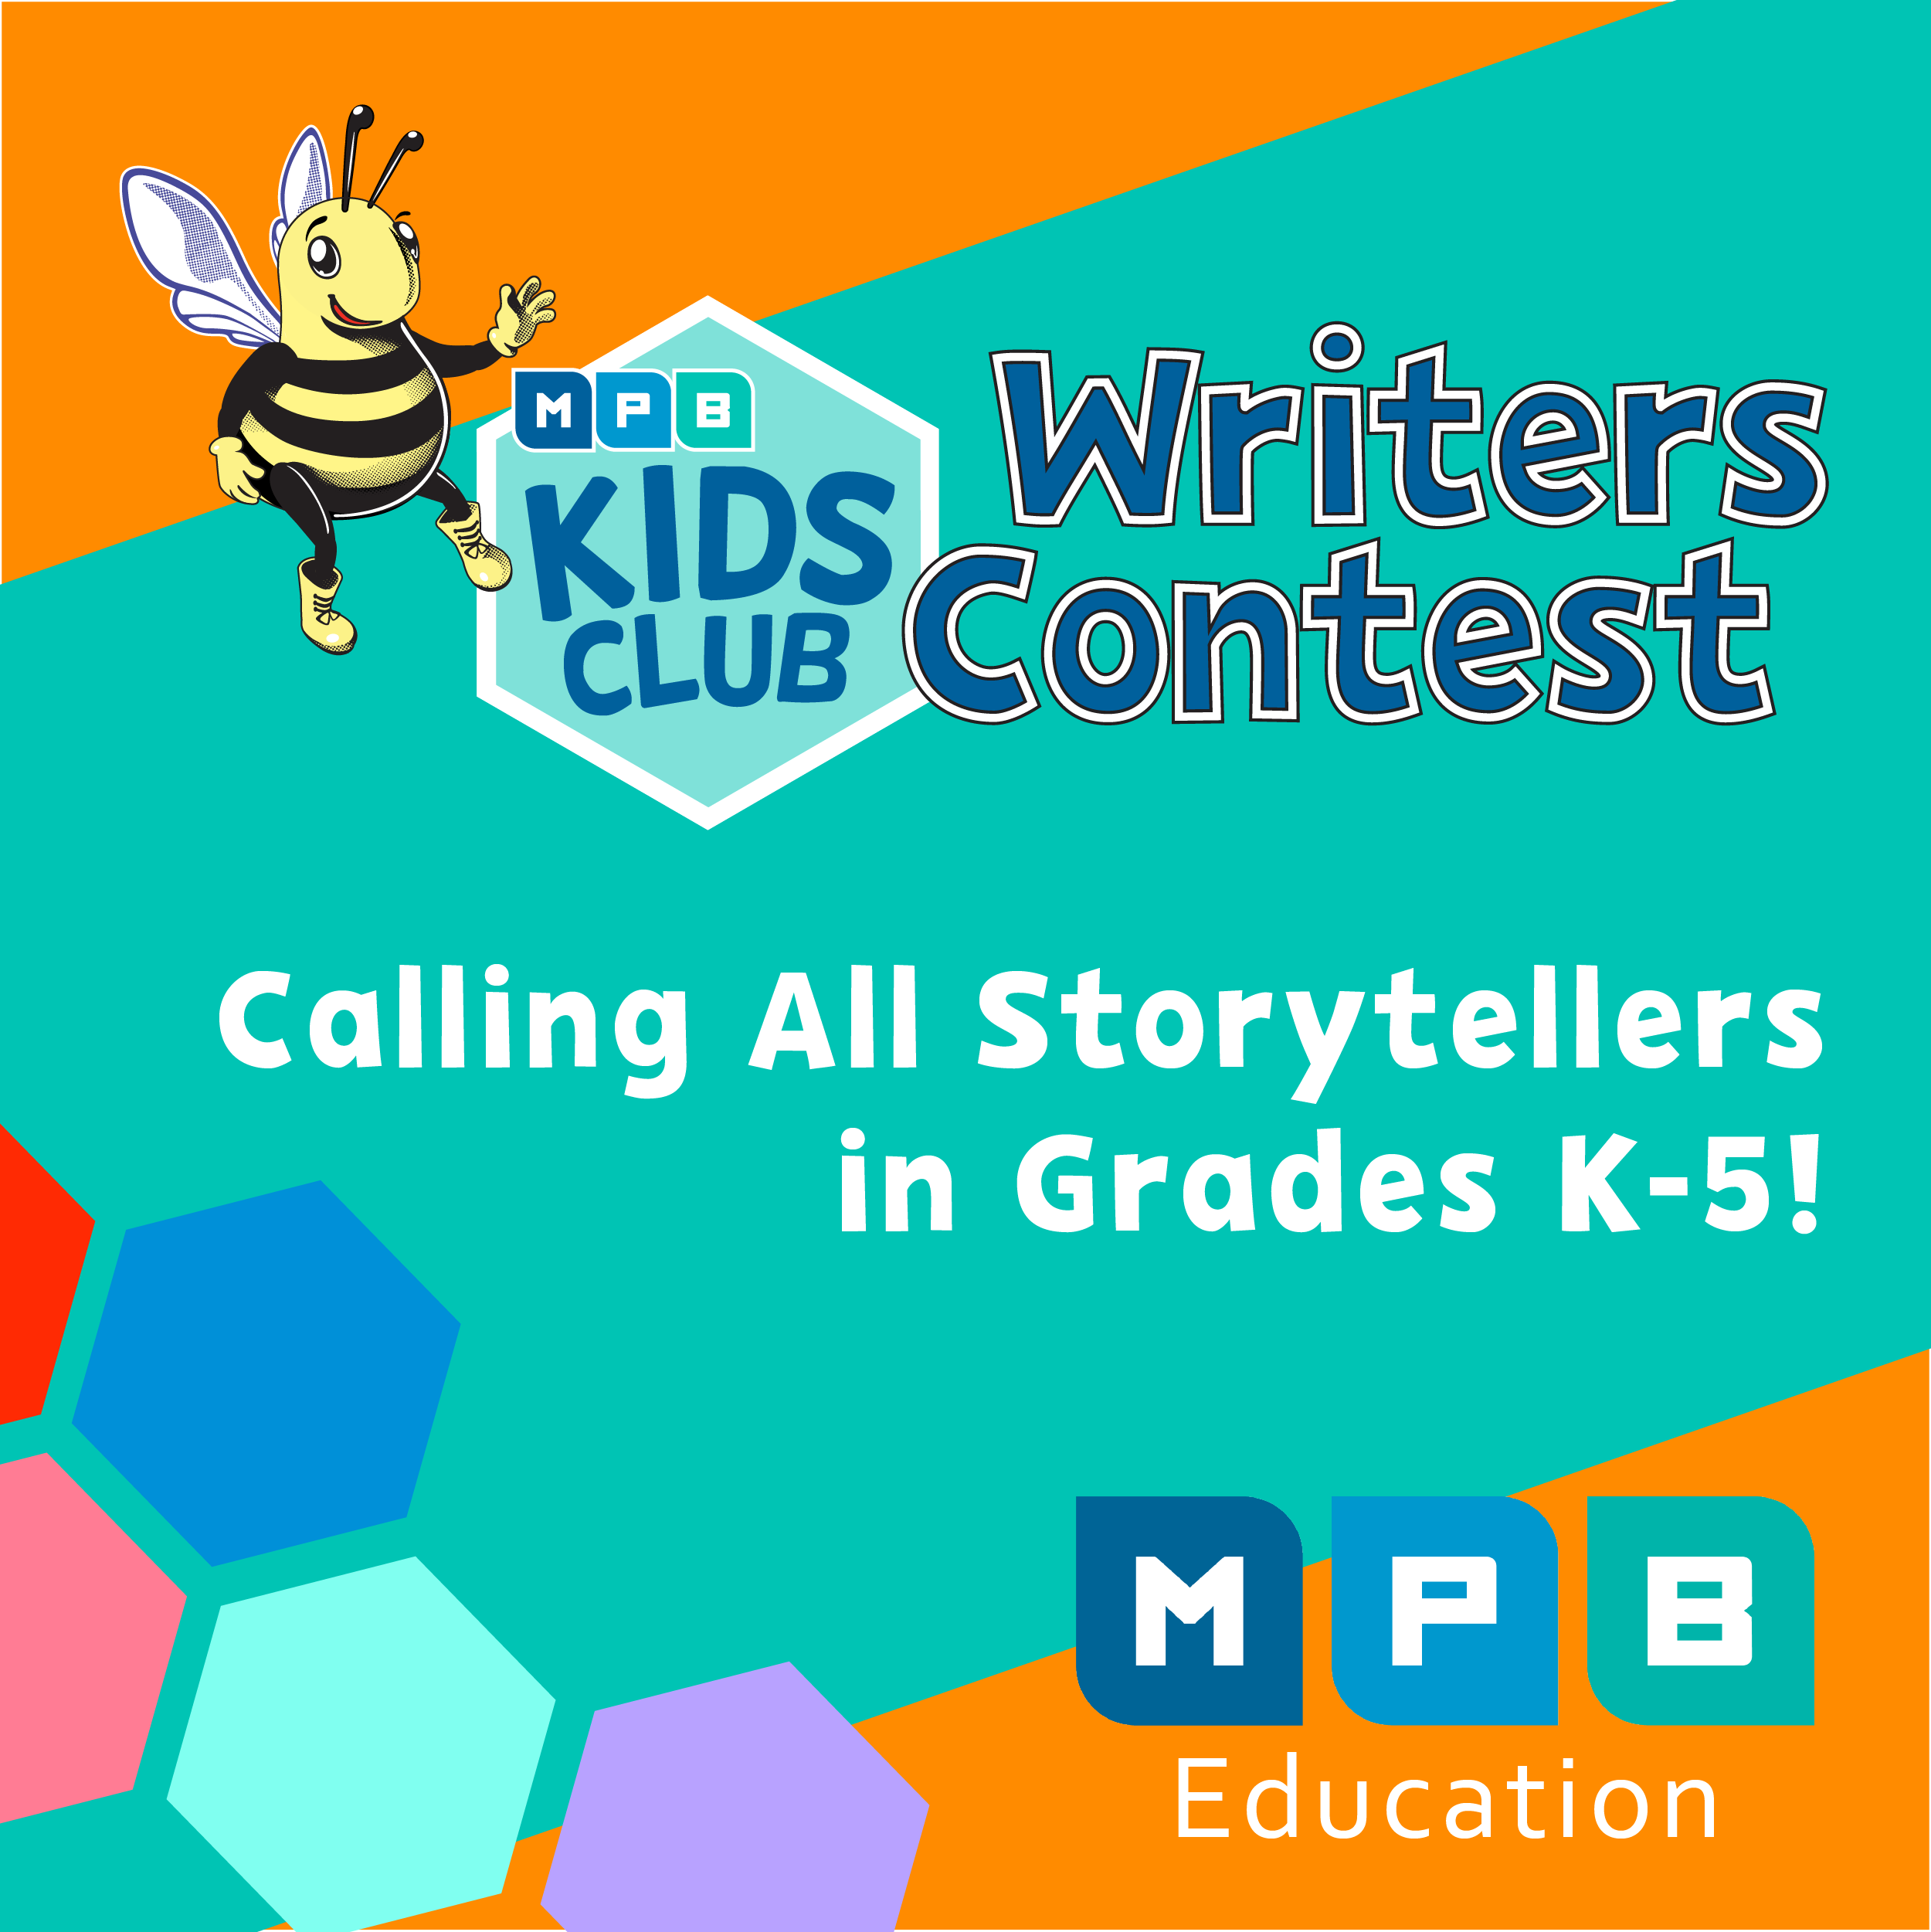 Enter the MPB Kids Club 2018 Writers Contest!